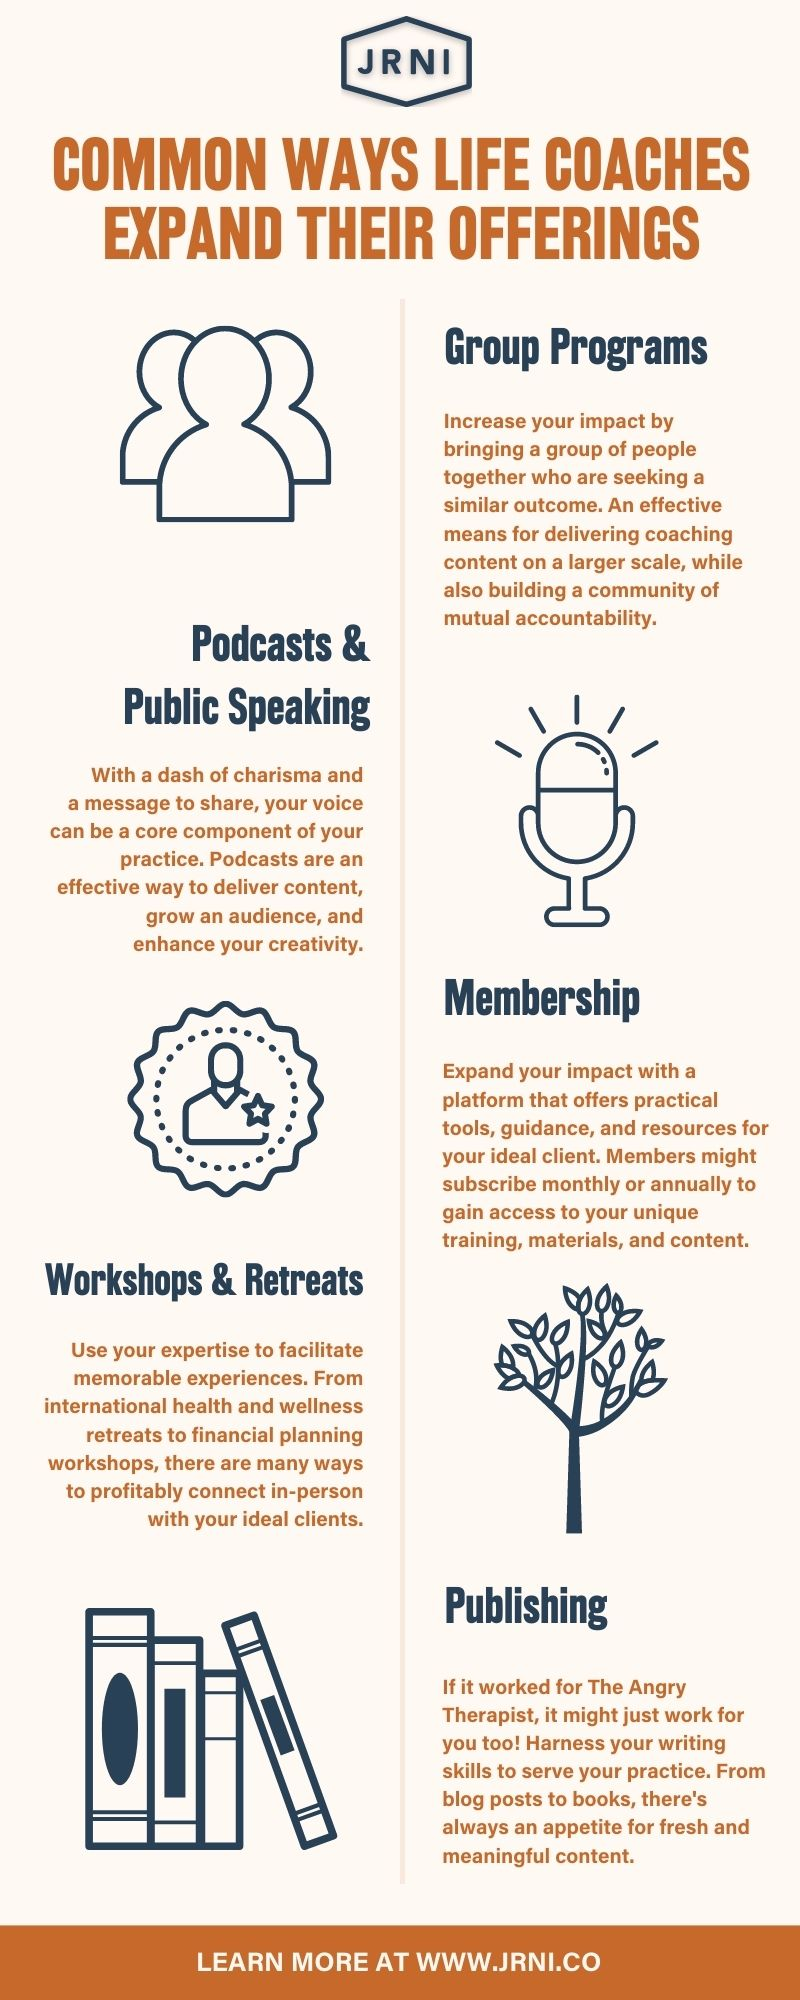 Diversify! List of common ways coaches expand their offerings, including: Group Programs, Podcasts & Public Speaking, Membership, Workshops & Retreats, Publishing